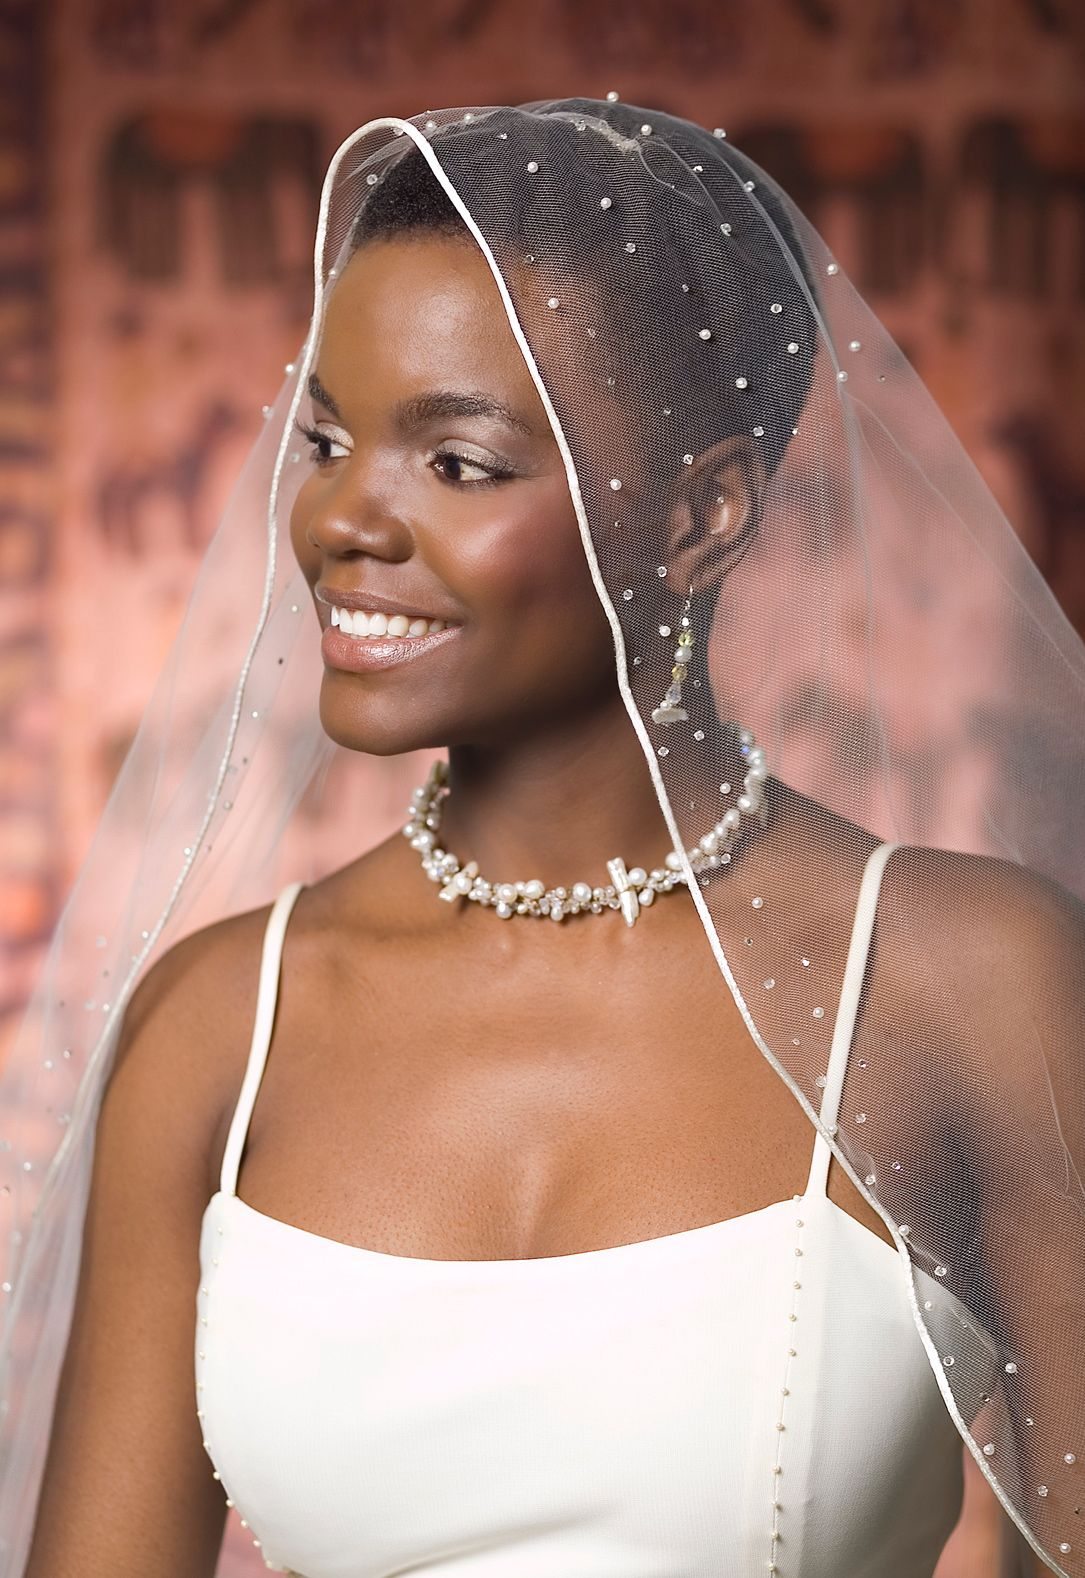 Beautiful natural bride, styled by Khamit Kinks (www.khamitkinks.com) via Afrobella.com. Tags: african american, natural wedding hairstyles, black wedding hairstyles